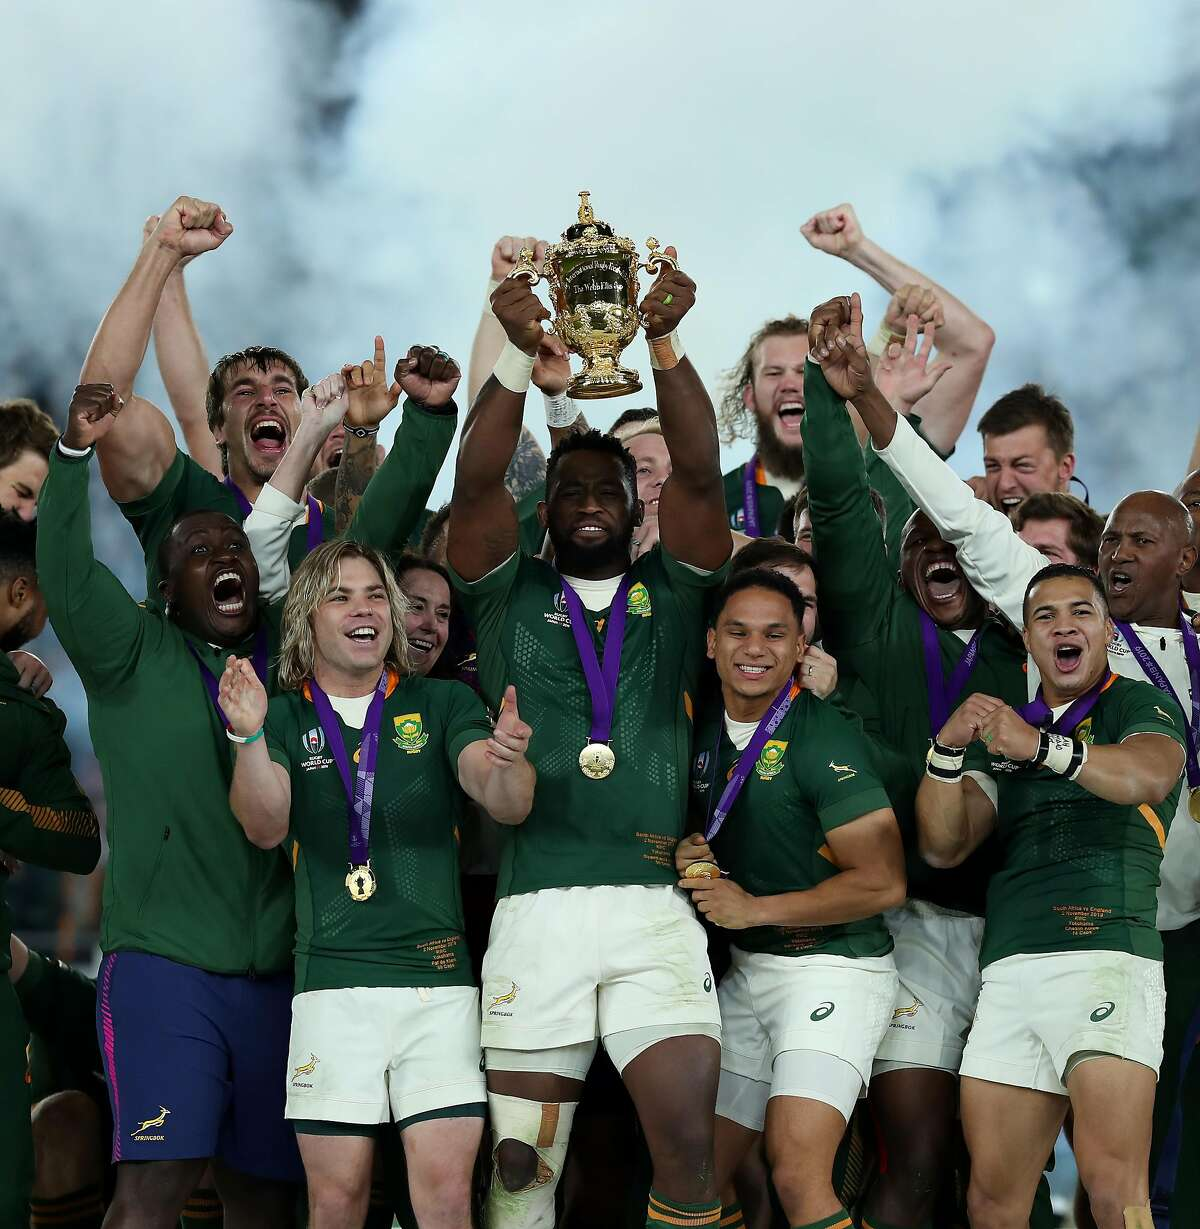 YOKOHAMA, JAPAN - NOVEMBER 02: Siya Kolisi, the South Africa captain, celebrates with team mates after their victory during the Rugby World Cup 2019 Final between England and South Africa at International Stadium Yokohama on November 02, 2019 in Yokohama, Kanagawa, Japan. (Photo by David Rogers/Getty Images)